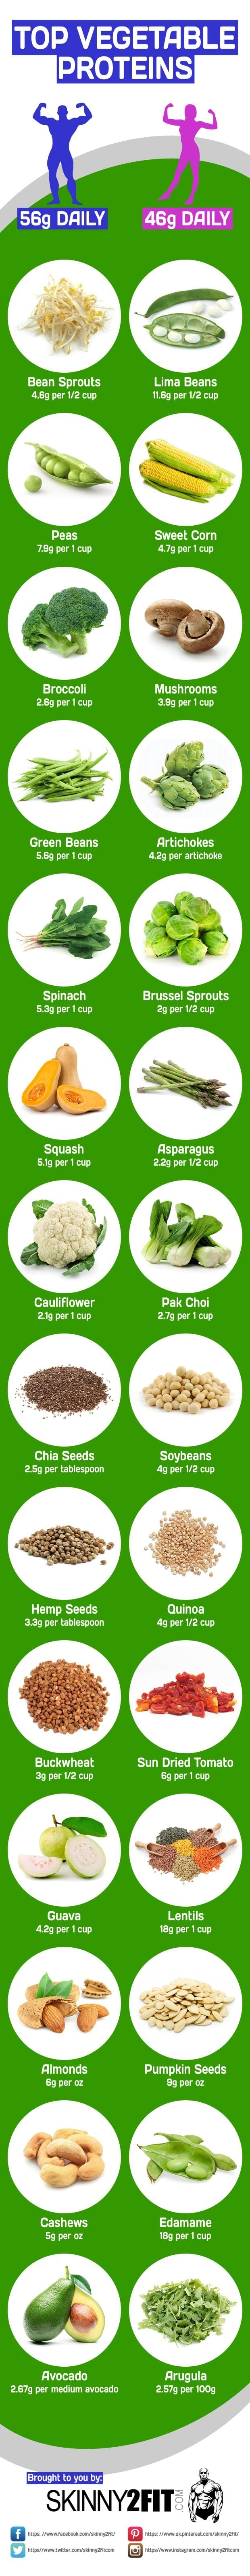 Top Vegetable Proteins